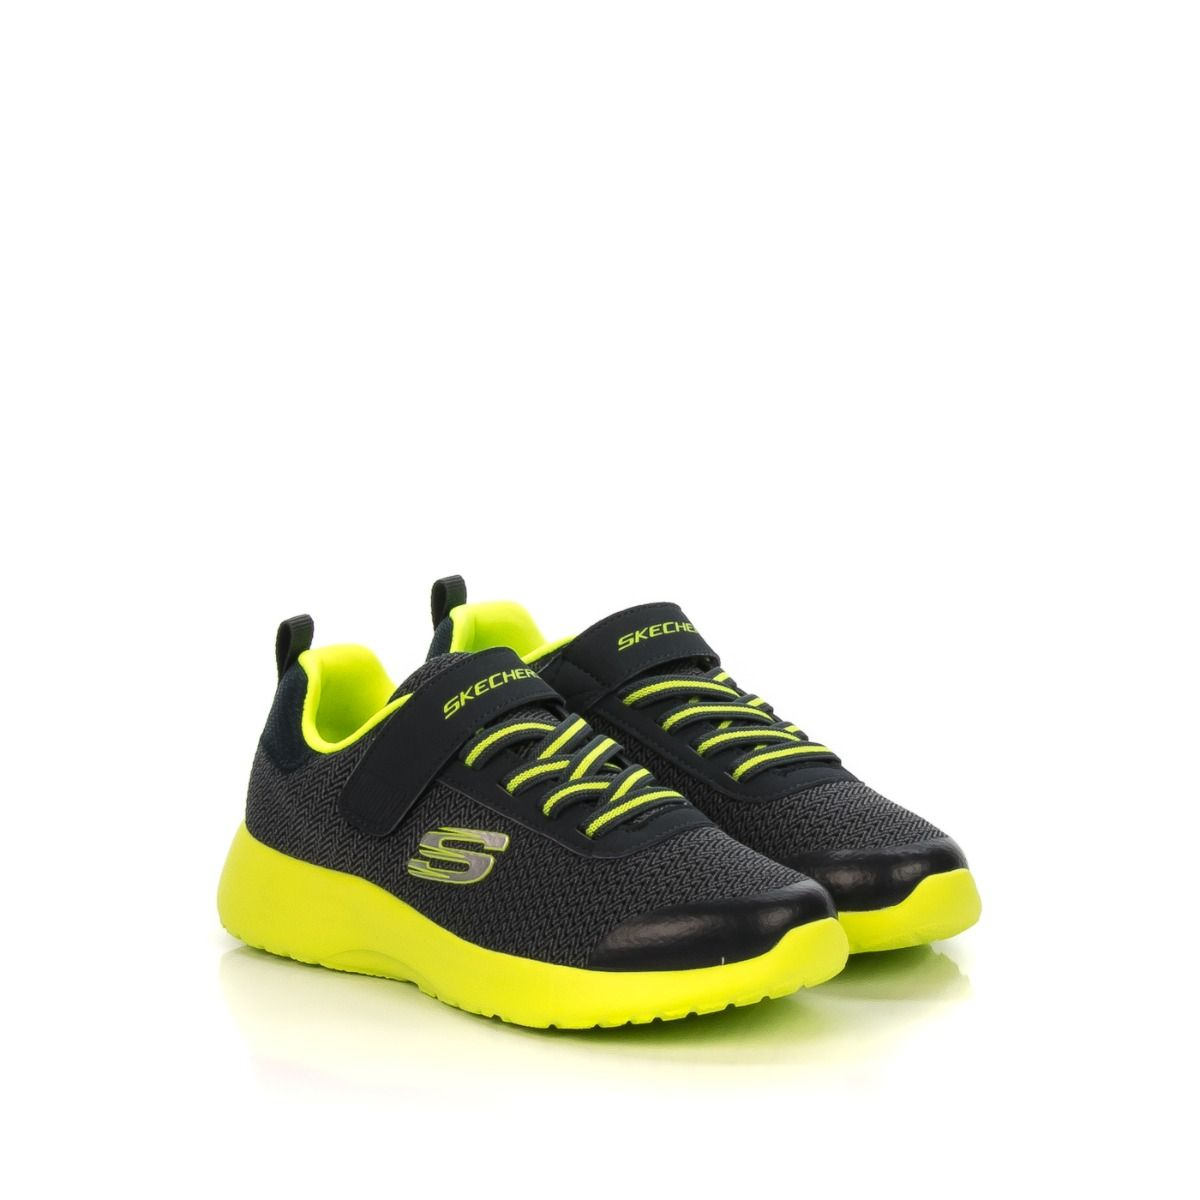 Giallo Donna Scarpe SKECHERS Sneakers Outlet online